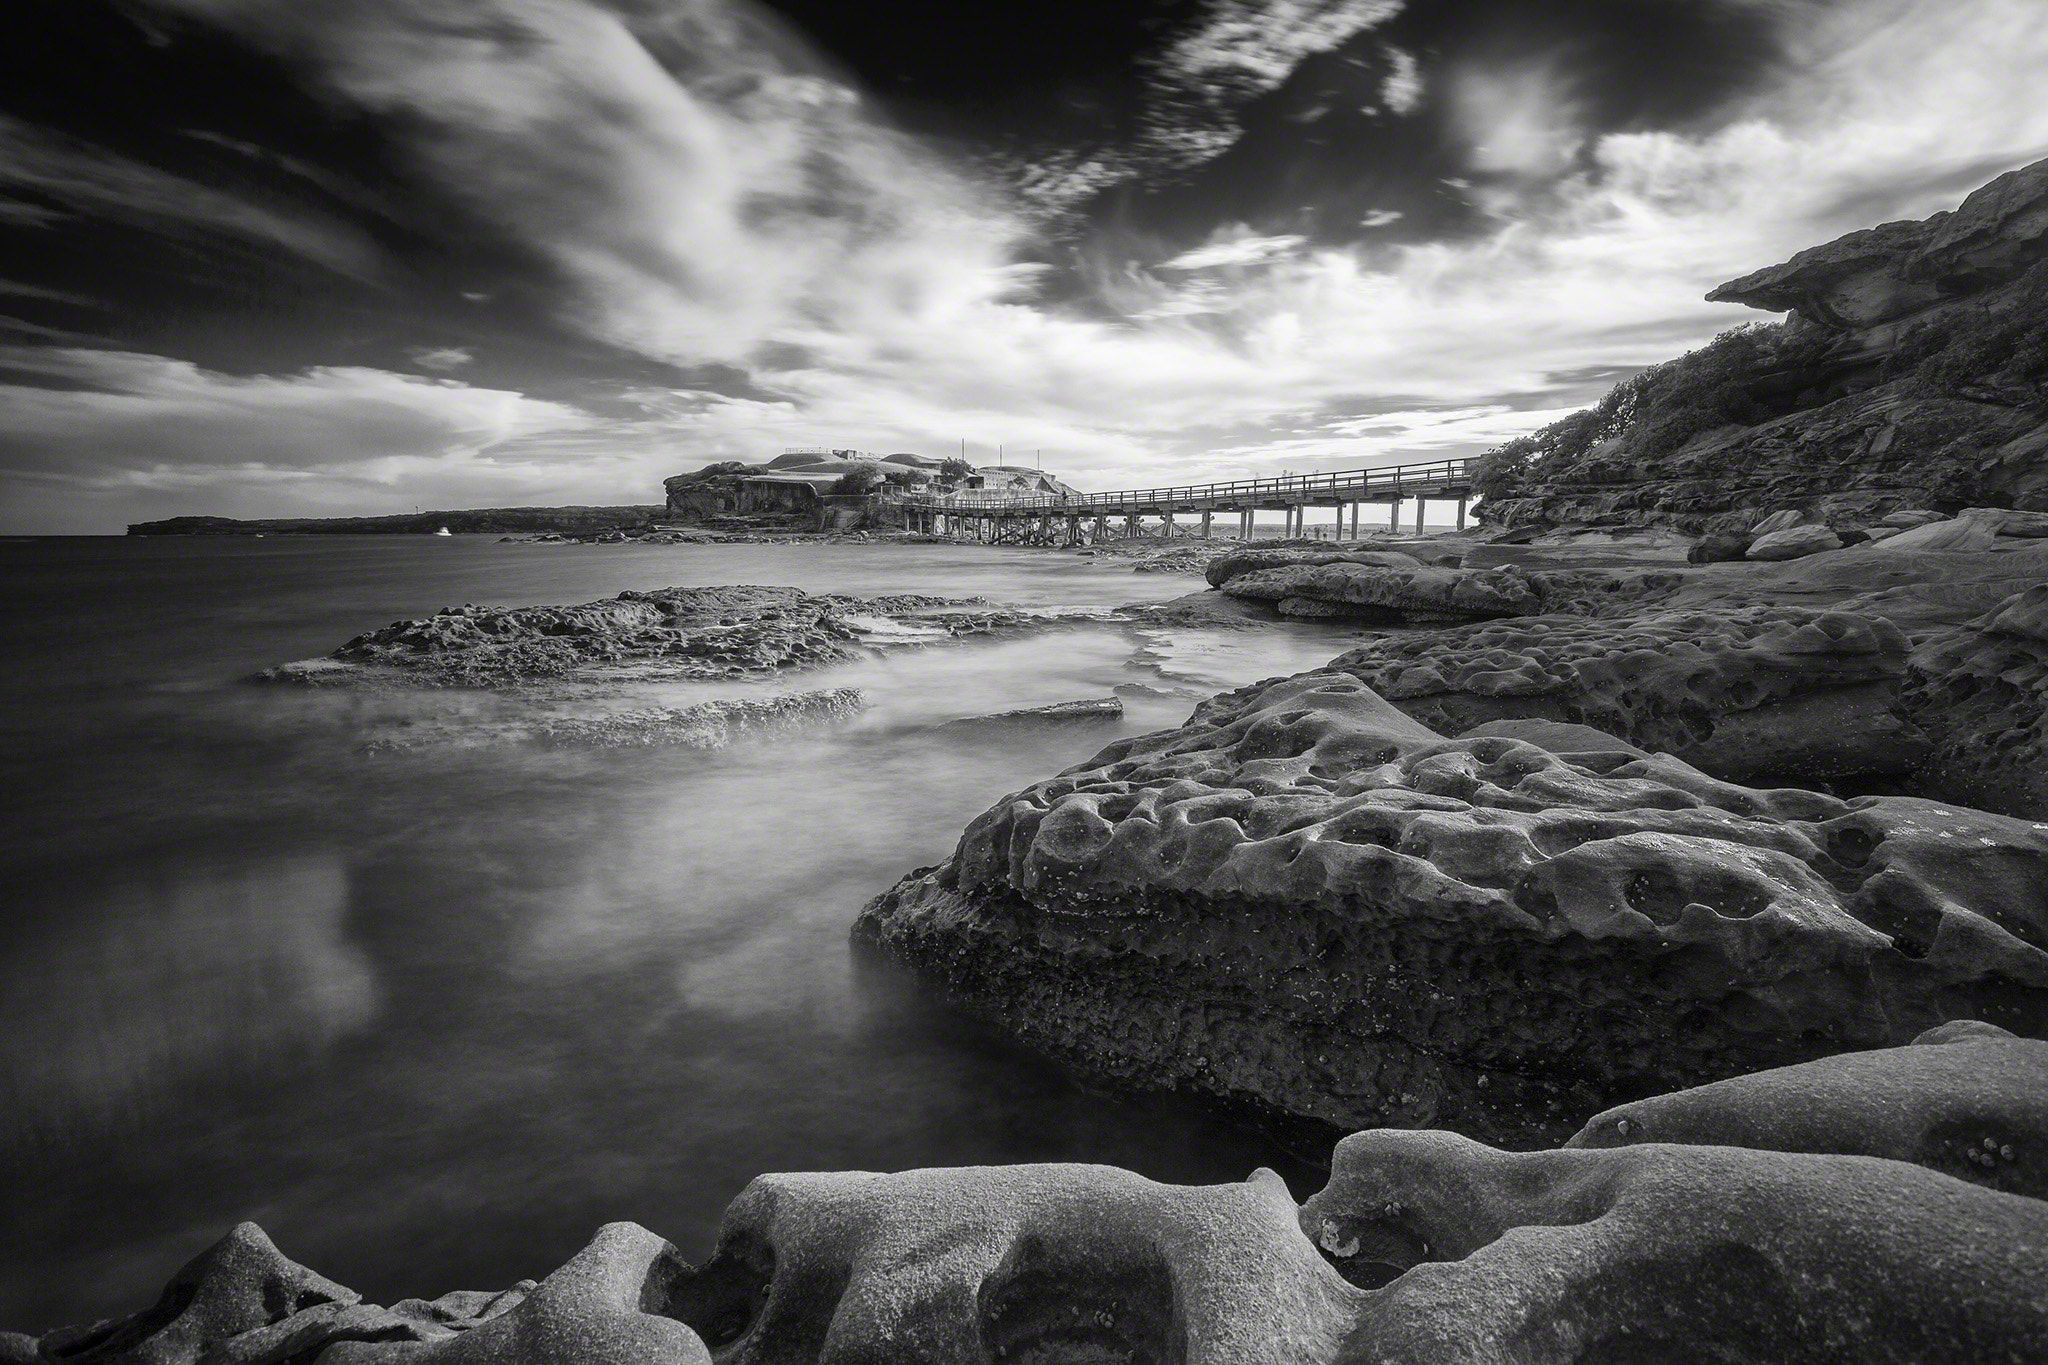 Photograph La Perouse, New South Wales by Warren Phillips on 500px